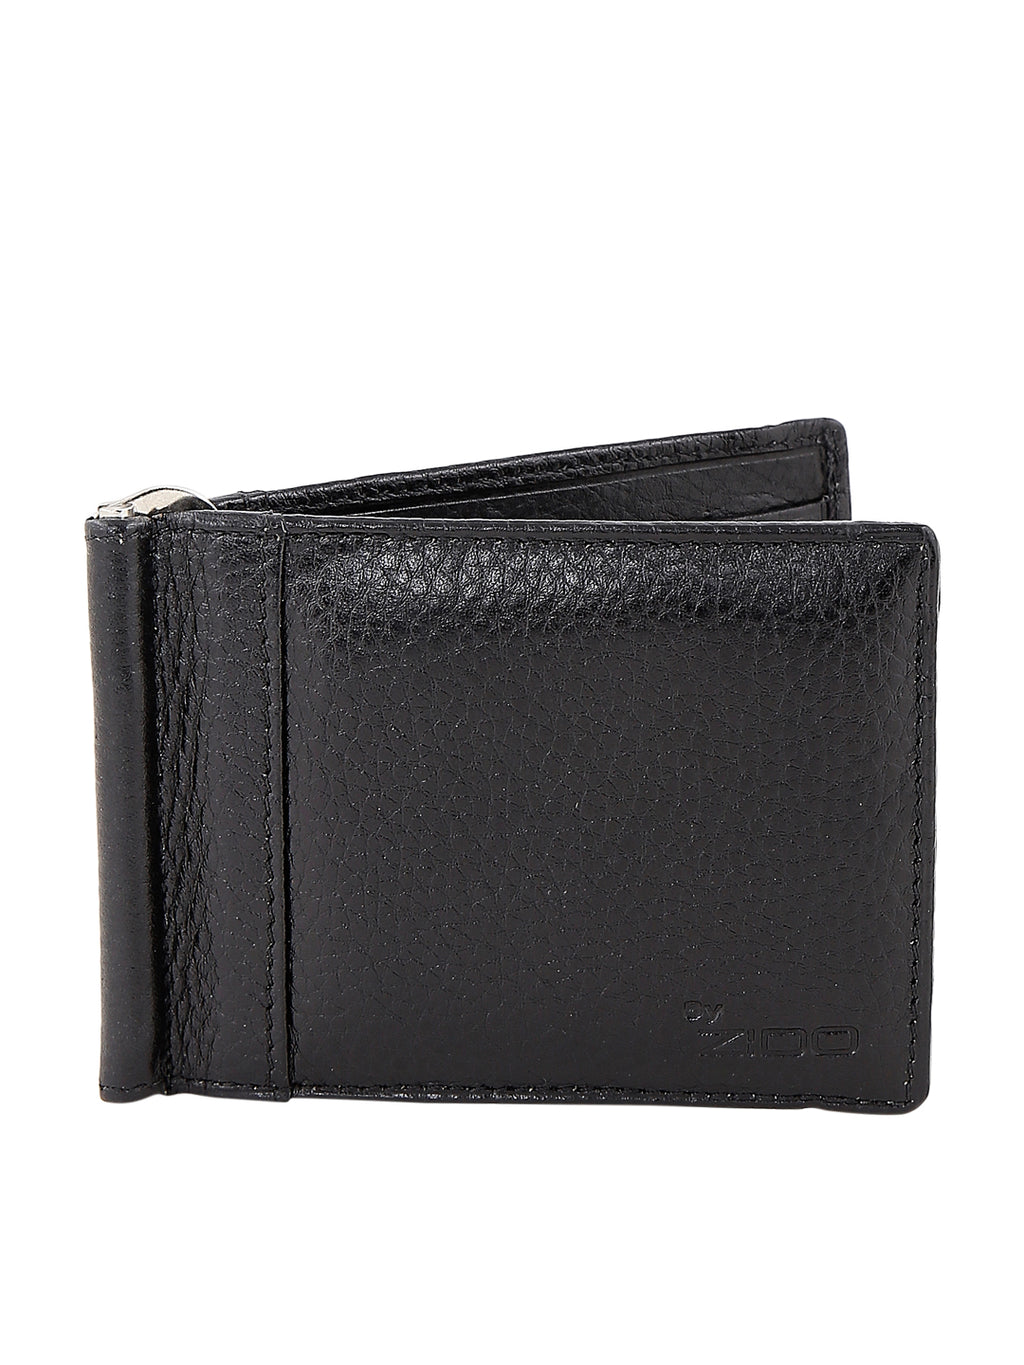 Zido Wallet for Men WLT050